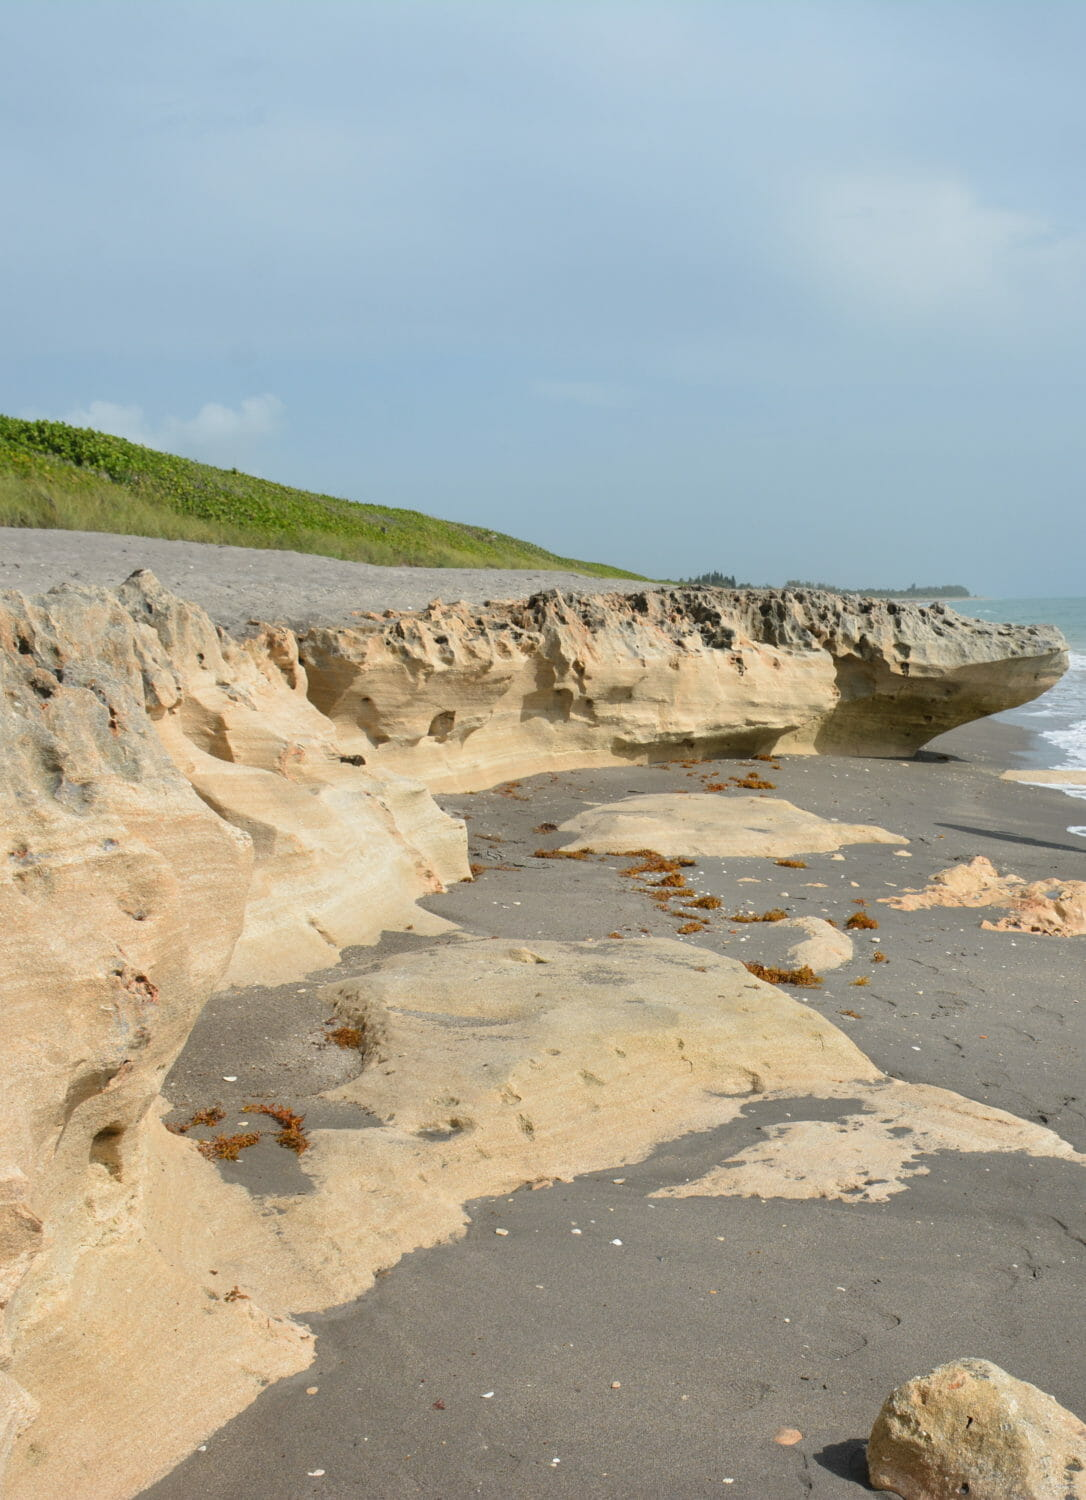 One of the most dramatic shorelines in Florida, the rocky shore of Blowing Rocks Preserve has sea caves and bluffs to explore on a hike through the oceanfront preserve.